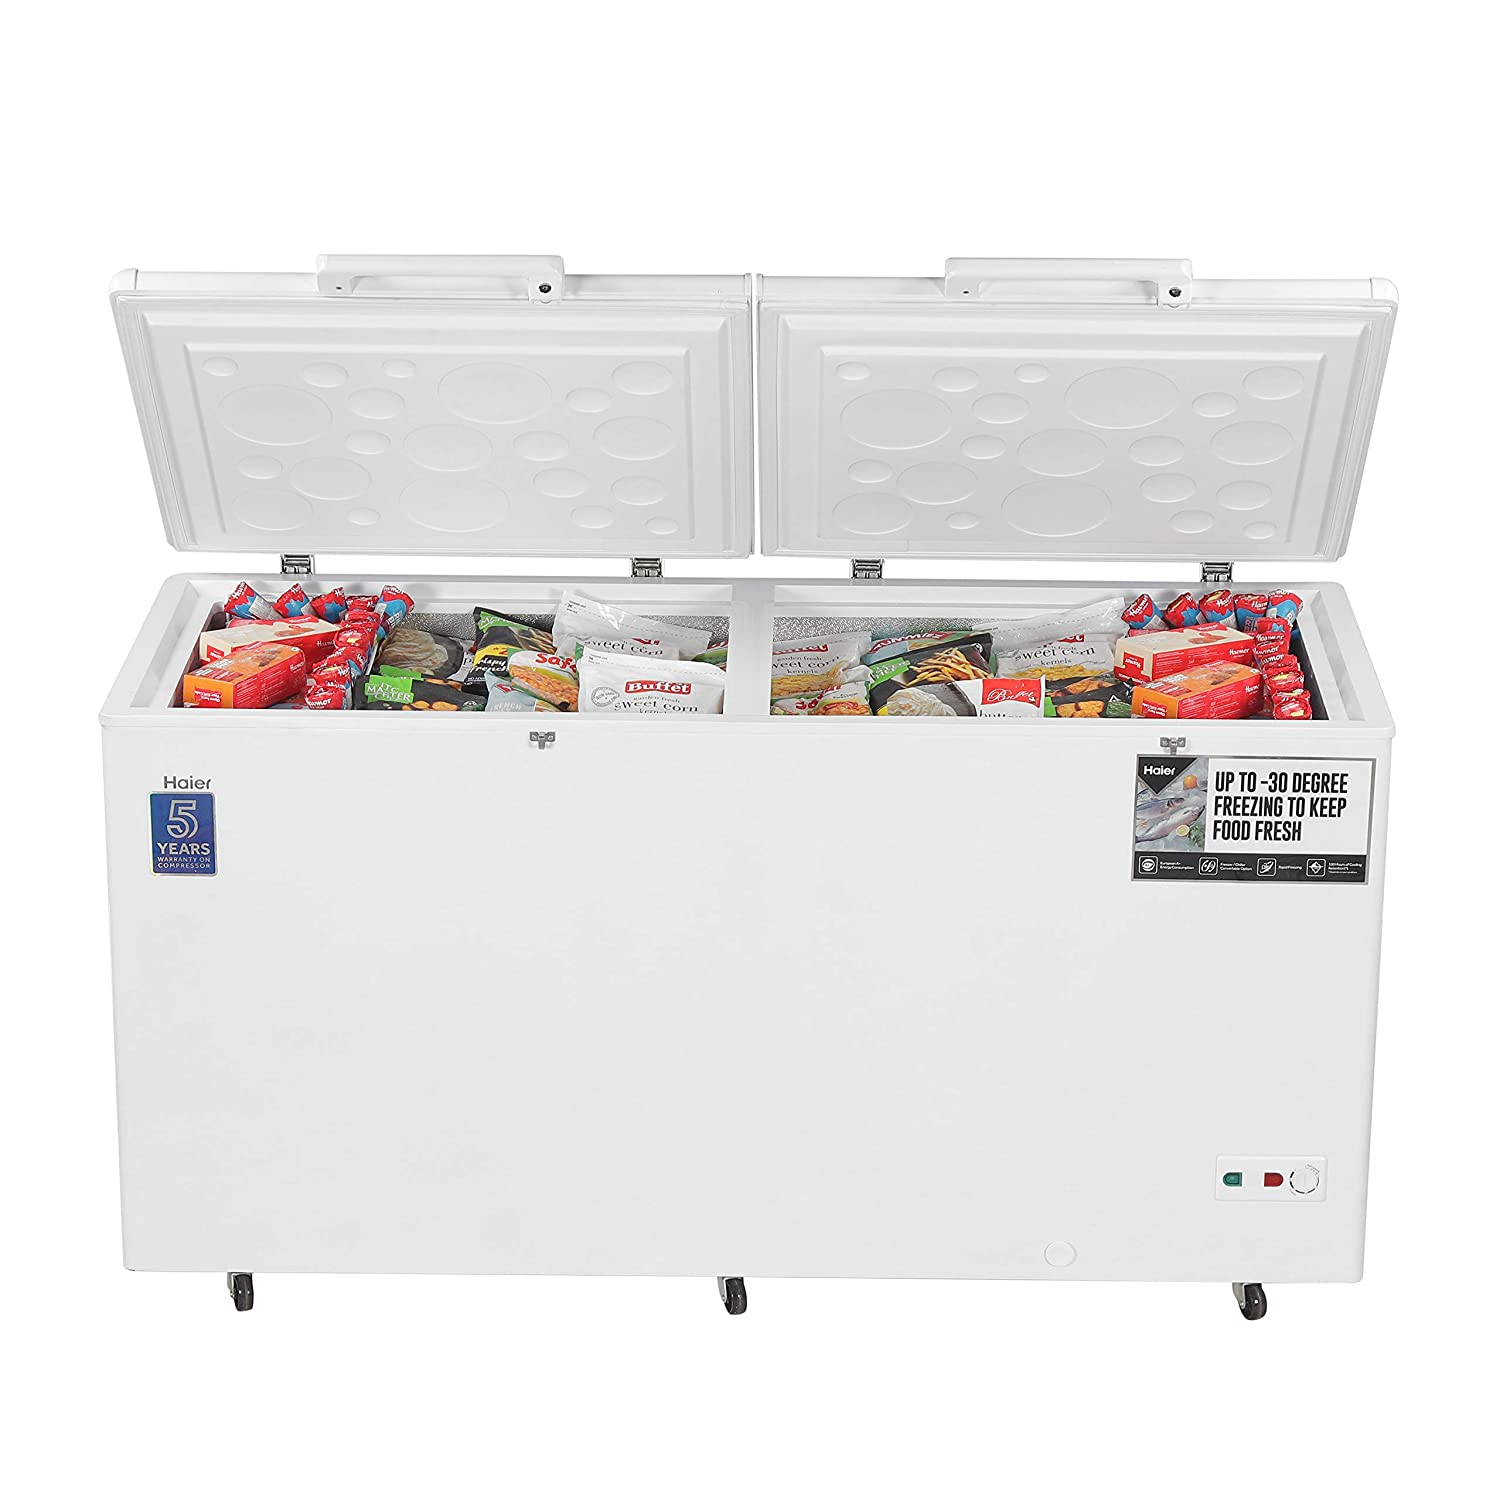 Haier HCC 460HC, Convertible, 429 liters, White